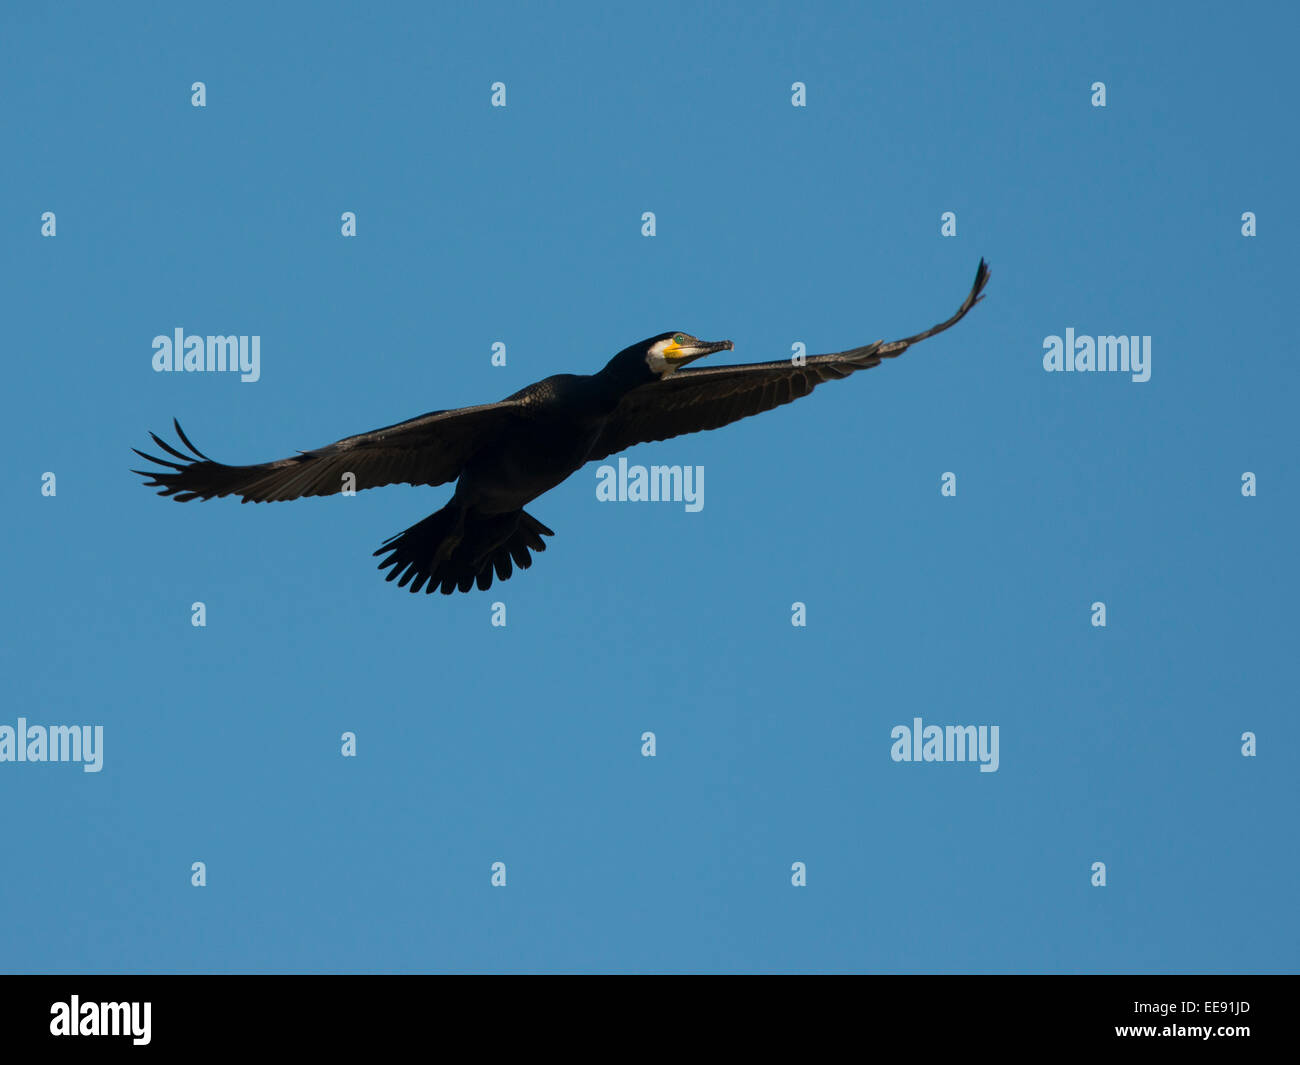 Kormoran (Phalacrocorax carbo), Cormorant - Stock Image